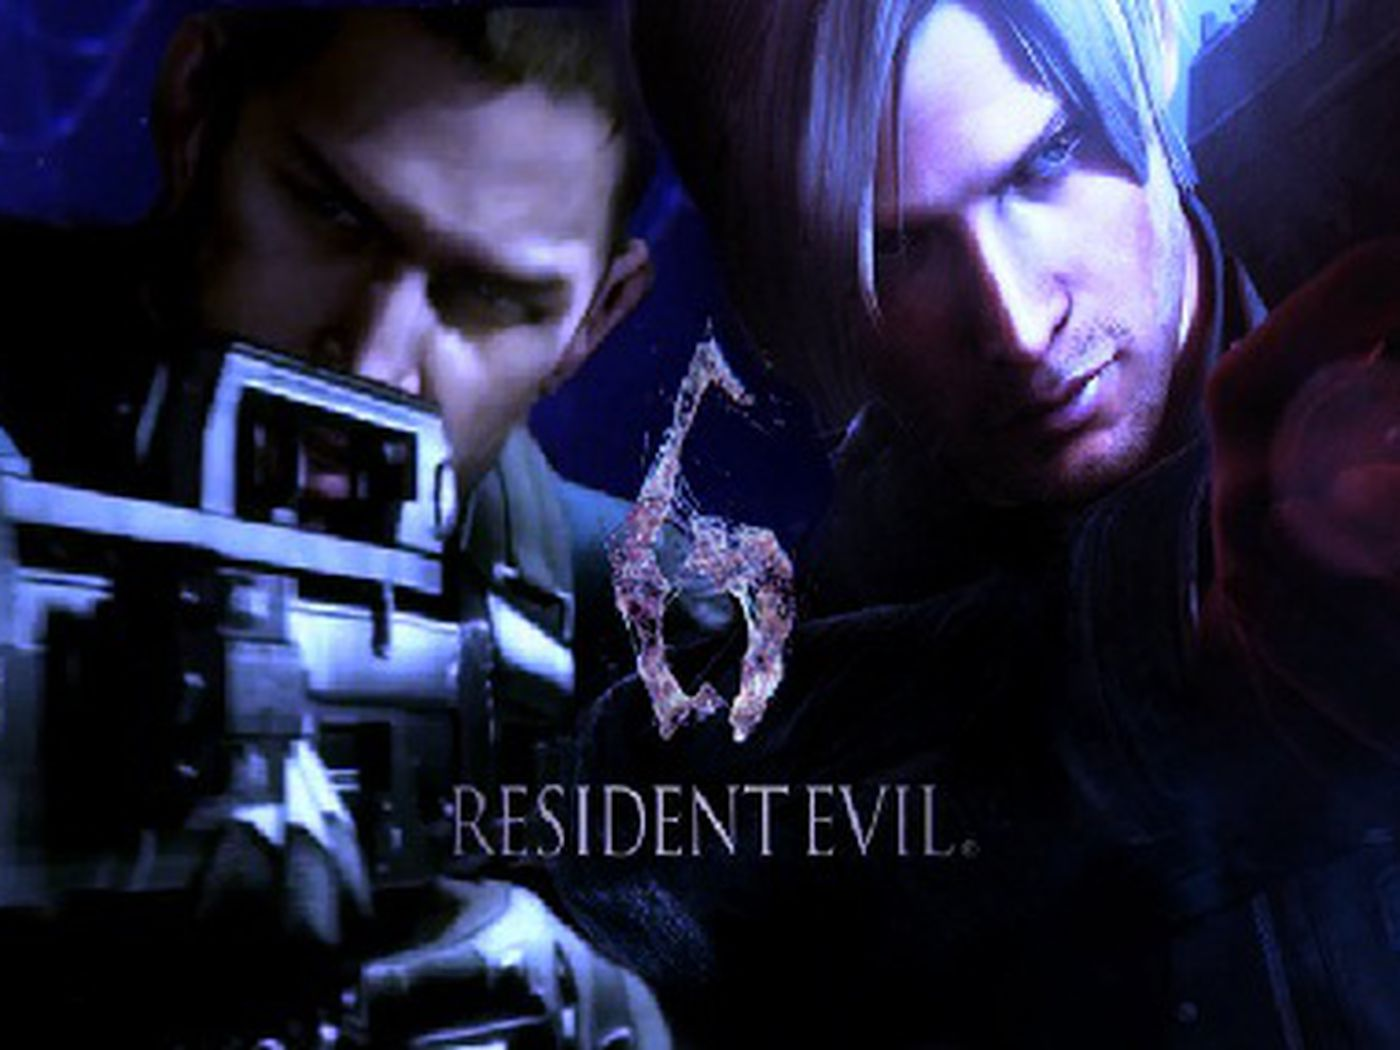 Resident Evil 6 20 Minute Gameplay Video Traps Leon In A Zombie